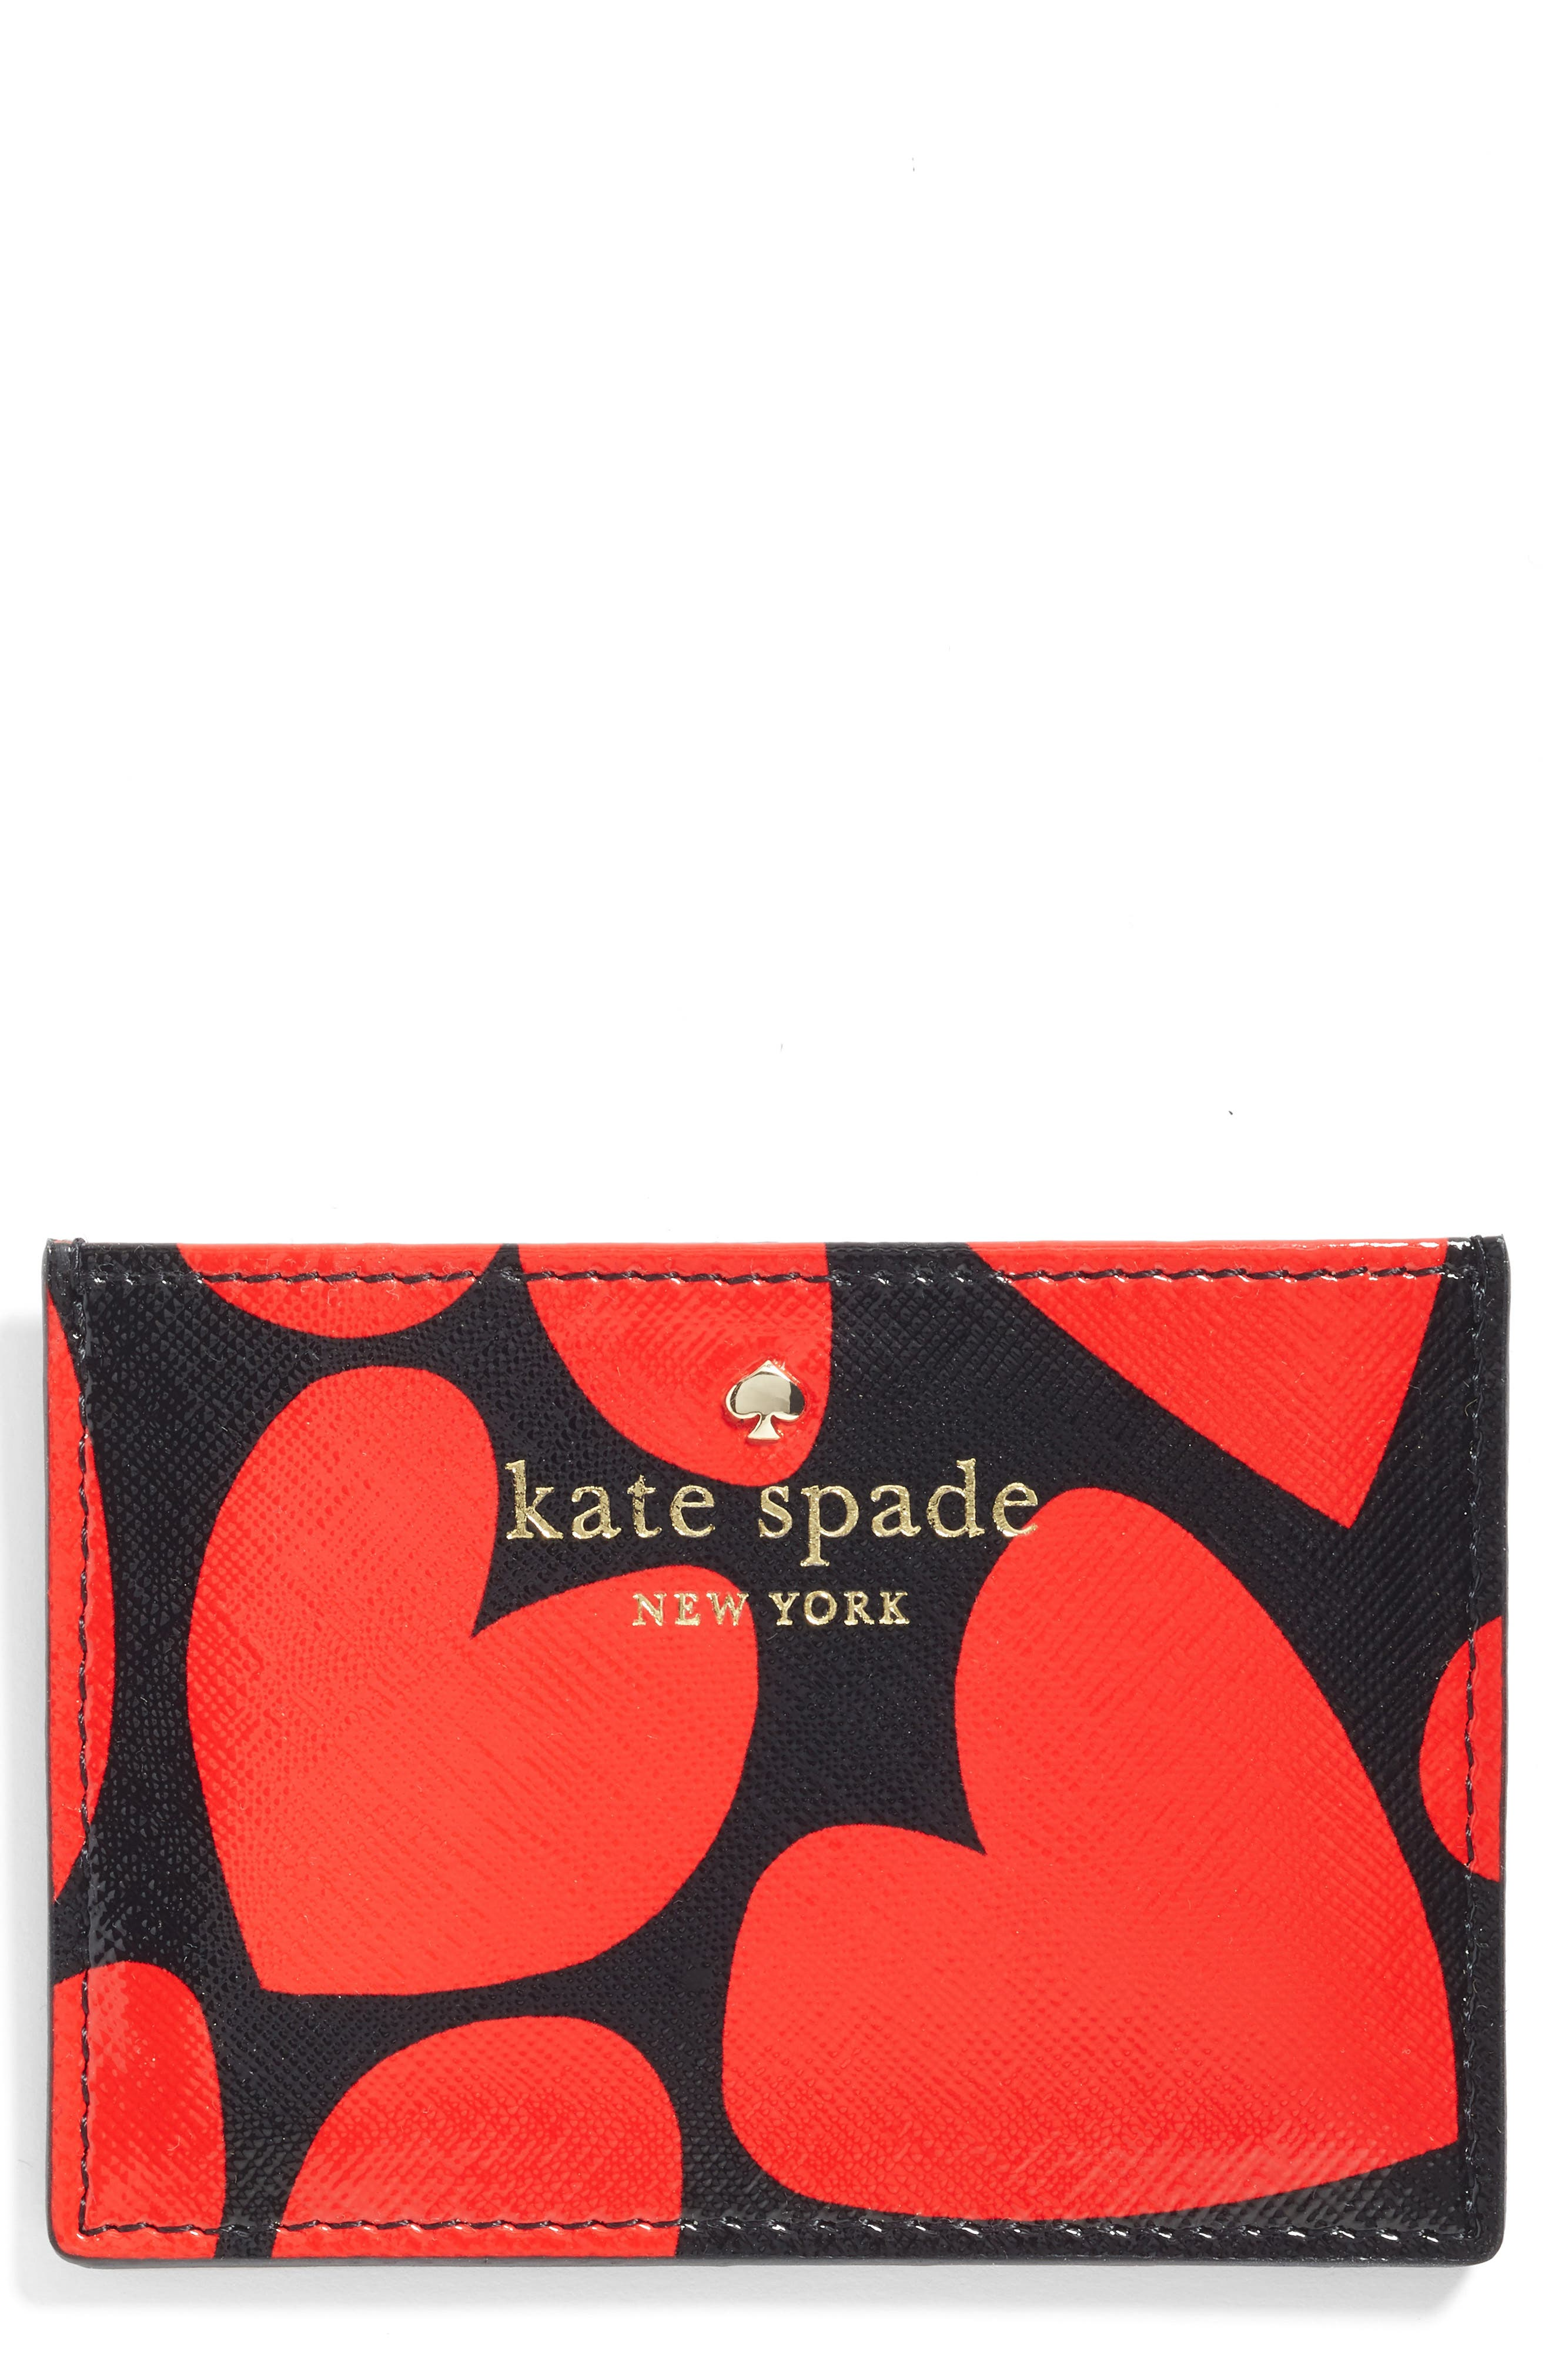 be mine card case, Main, color, 604